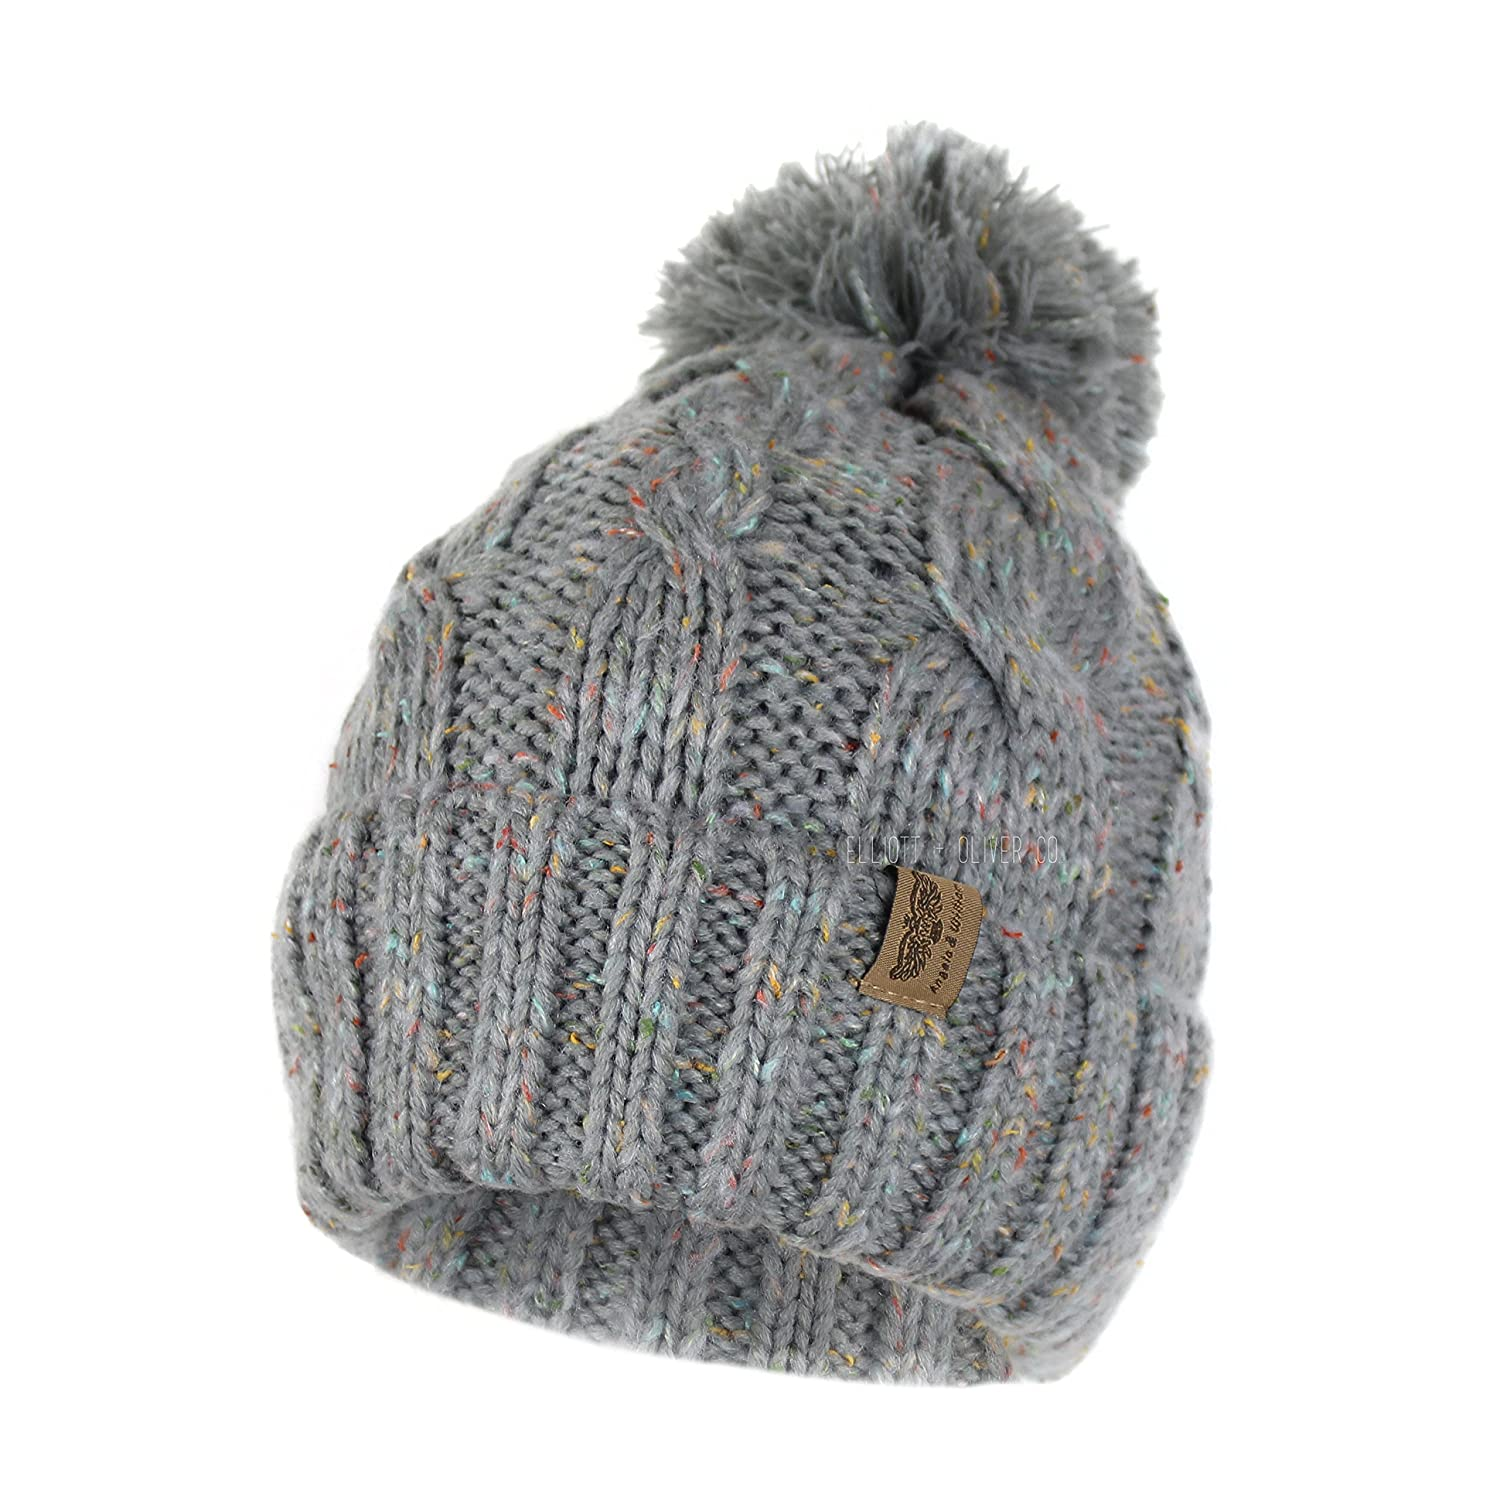 Soft Stretch Chunky Cable Knit Beanie Hat with Pom Pom and Sherpa Fleece  Lining (Confetti Grey) at Amazon Women s Clothing store  73b3ffc7b9e